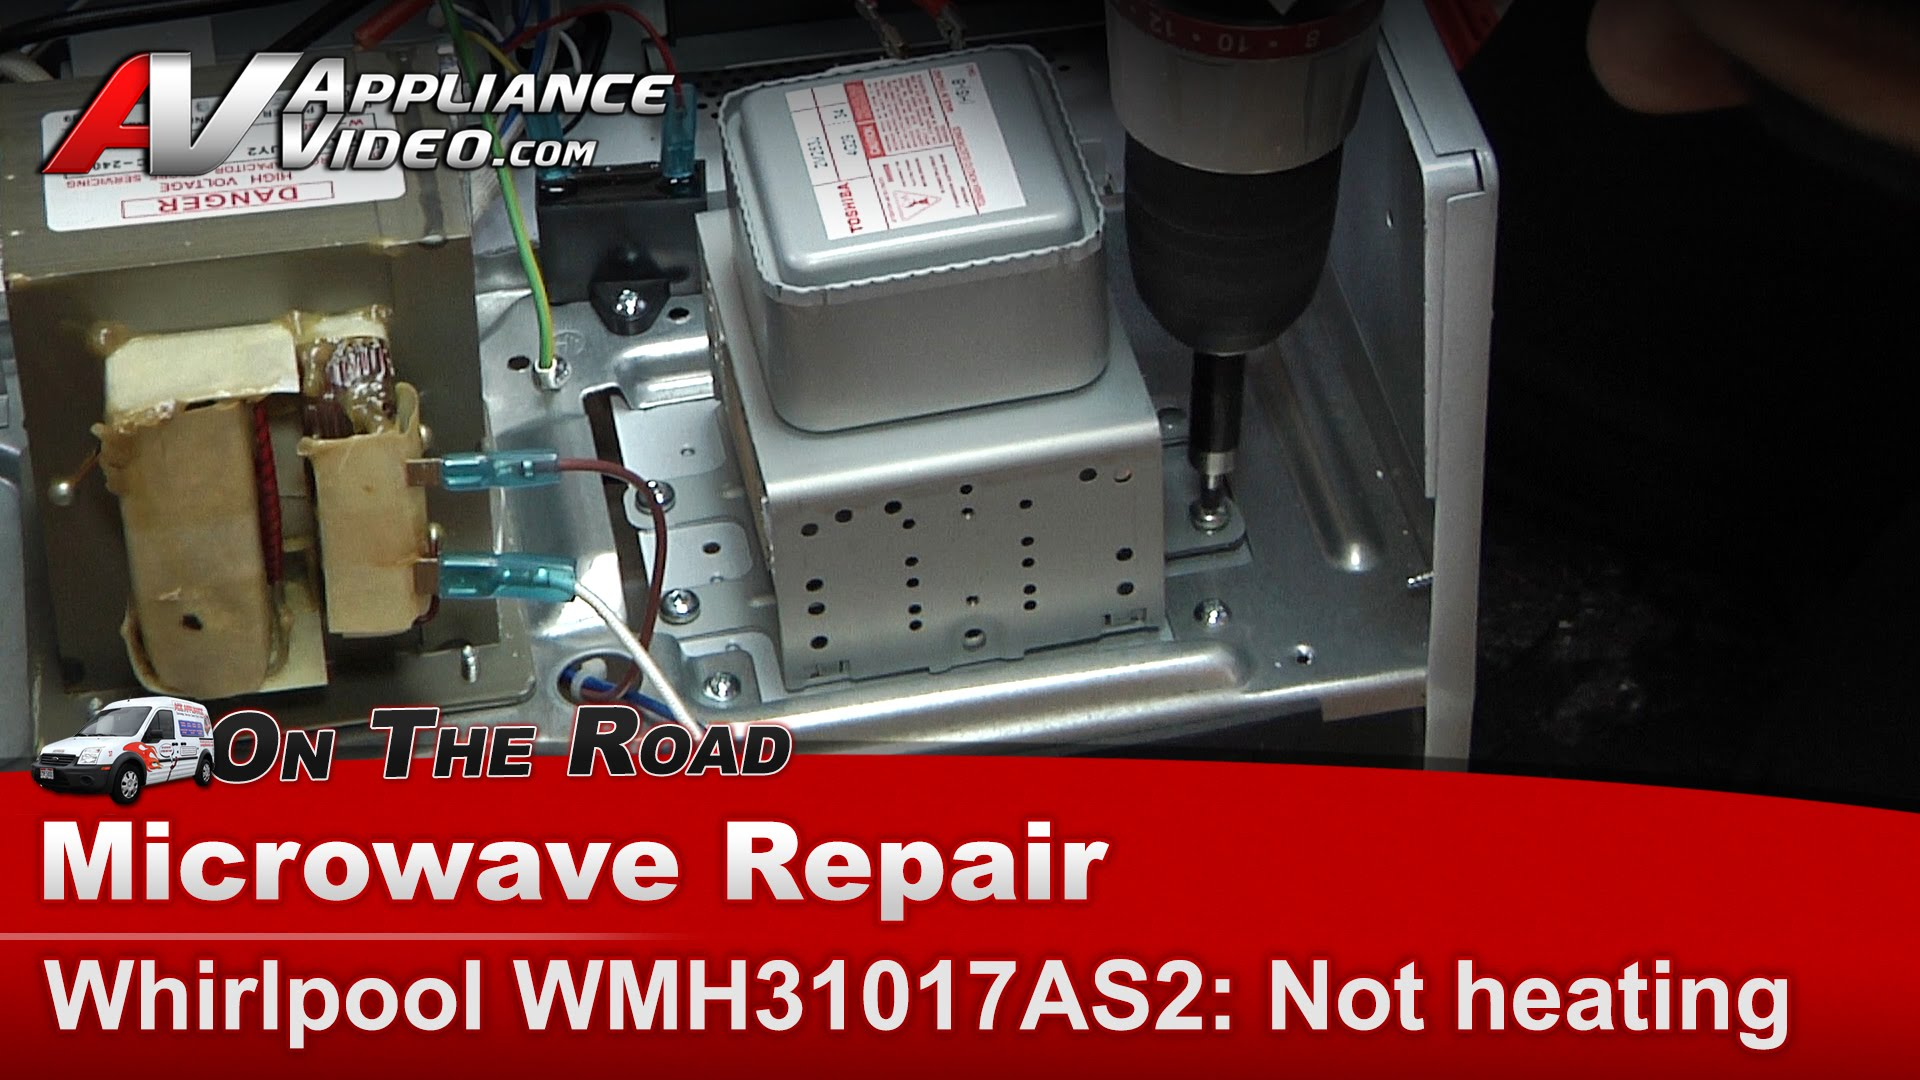 Whirlpool Wmh31017as2 Microwave Repair Not Heating